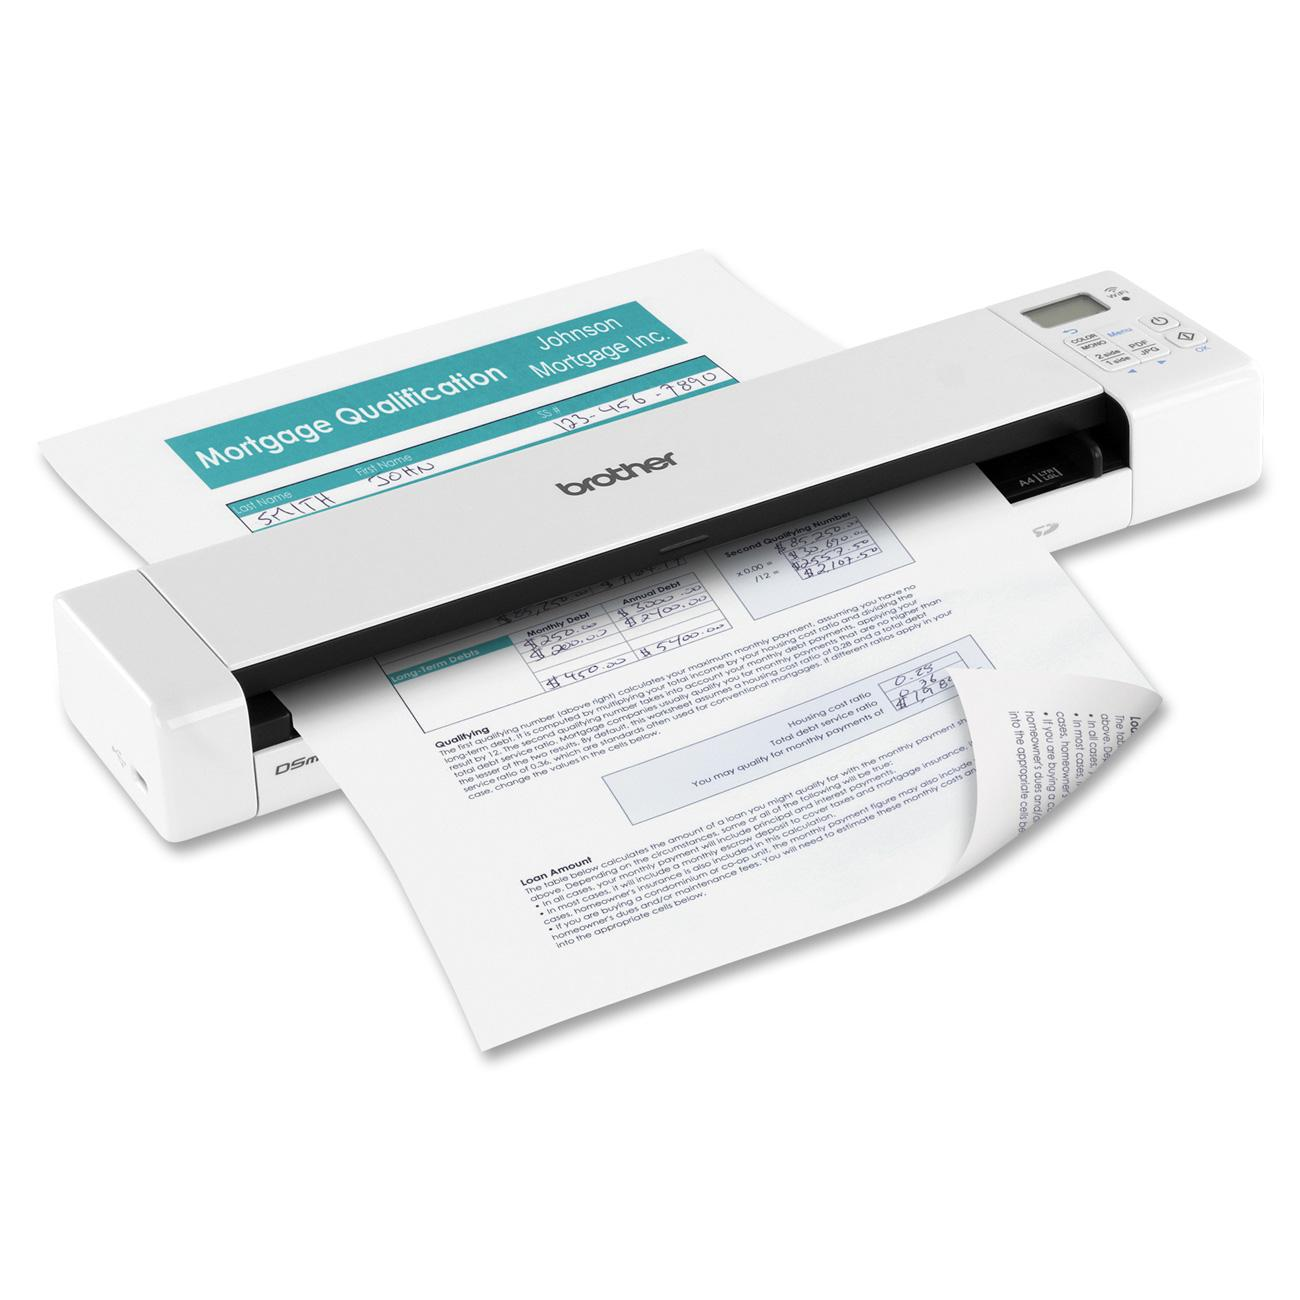 Brother Wireless Mobile Color Page Scanner, White